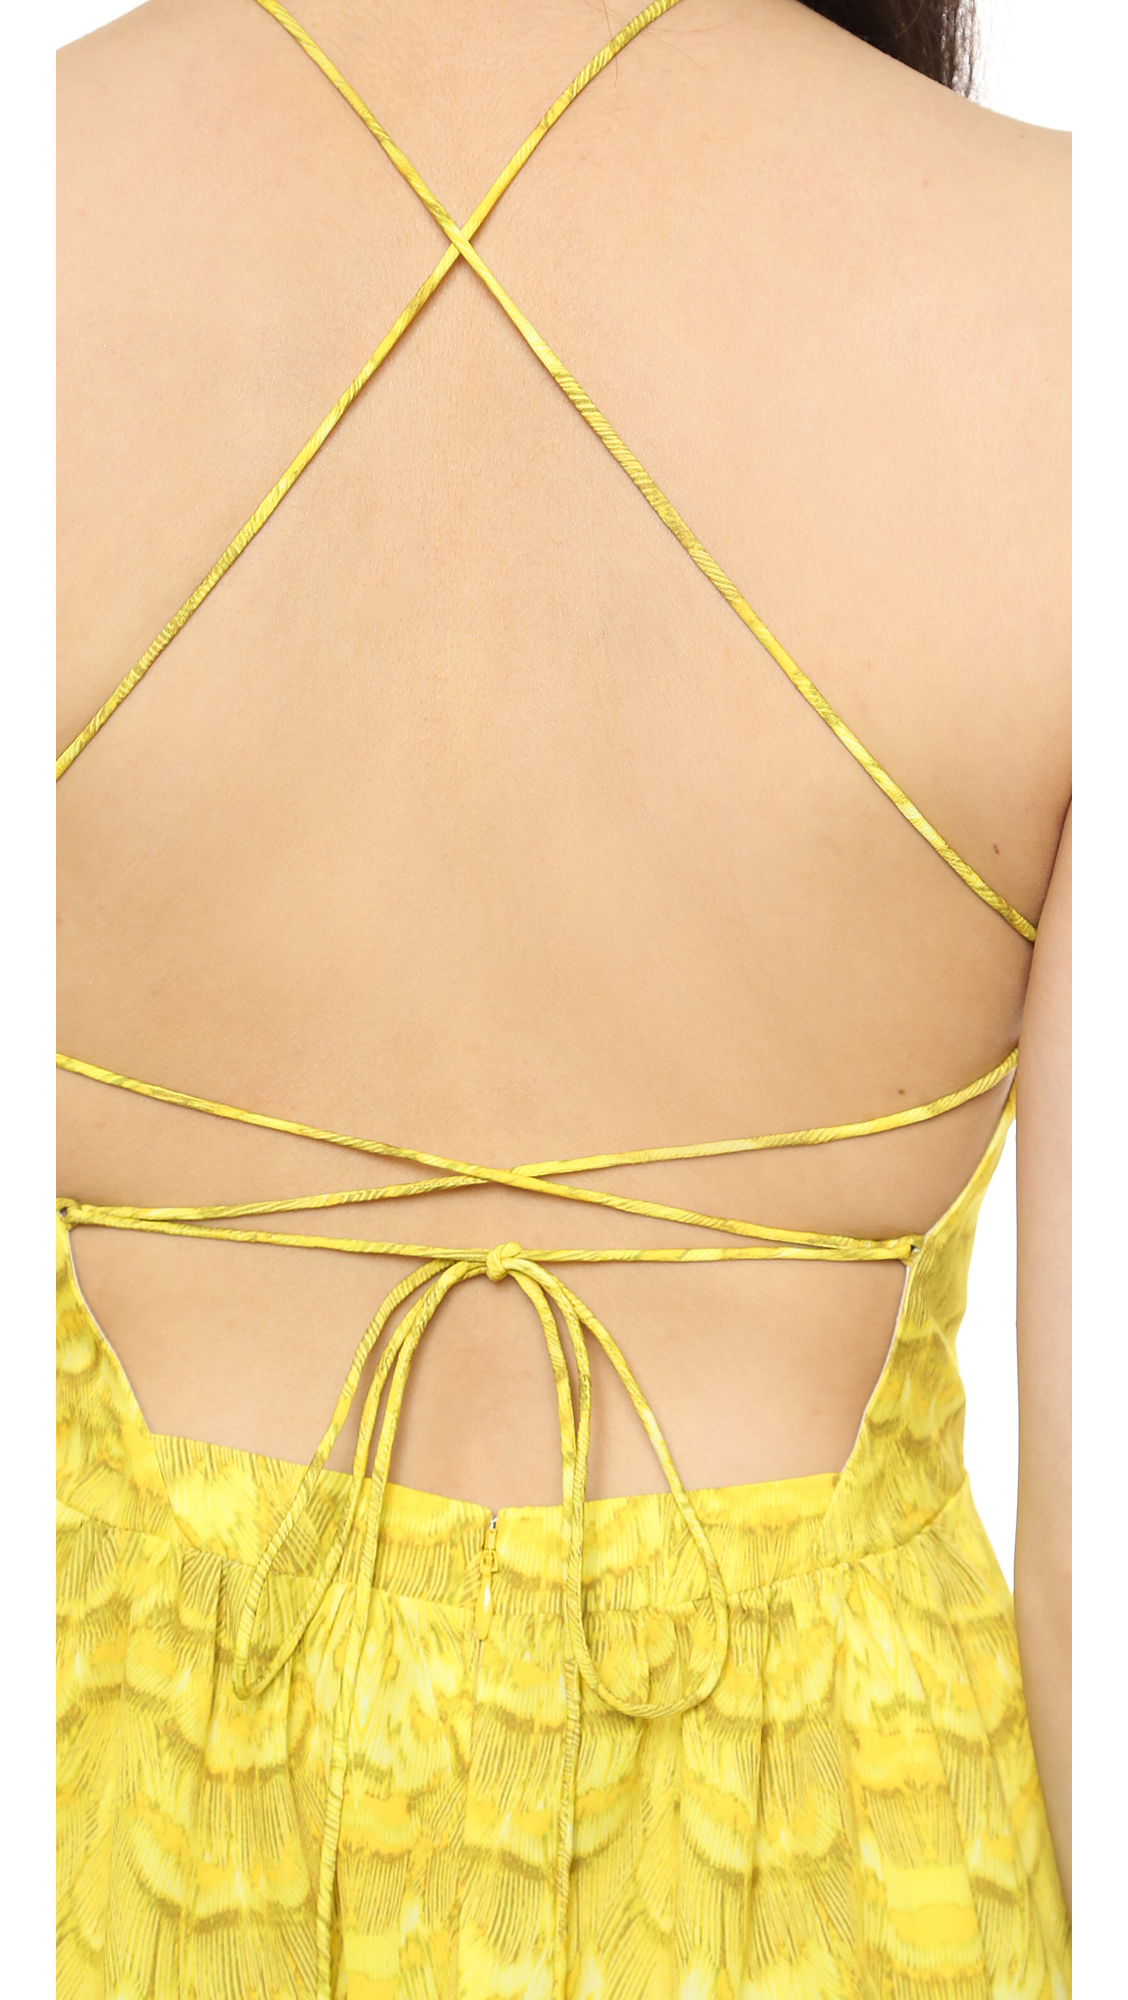 Tibi Strappy Maxi Dress - Citrine-nocturnal in Yellow